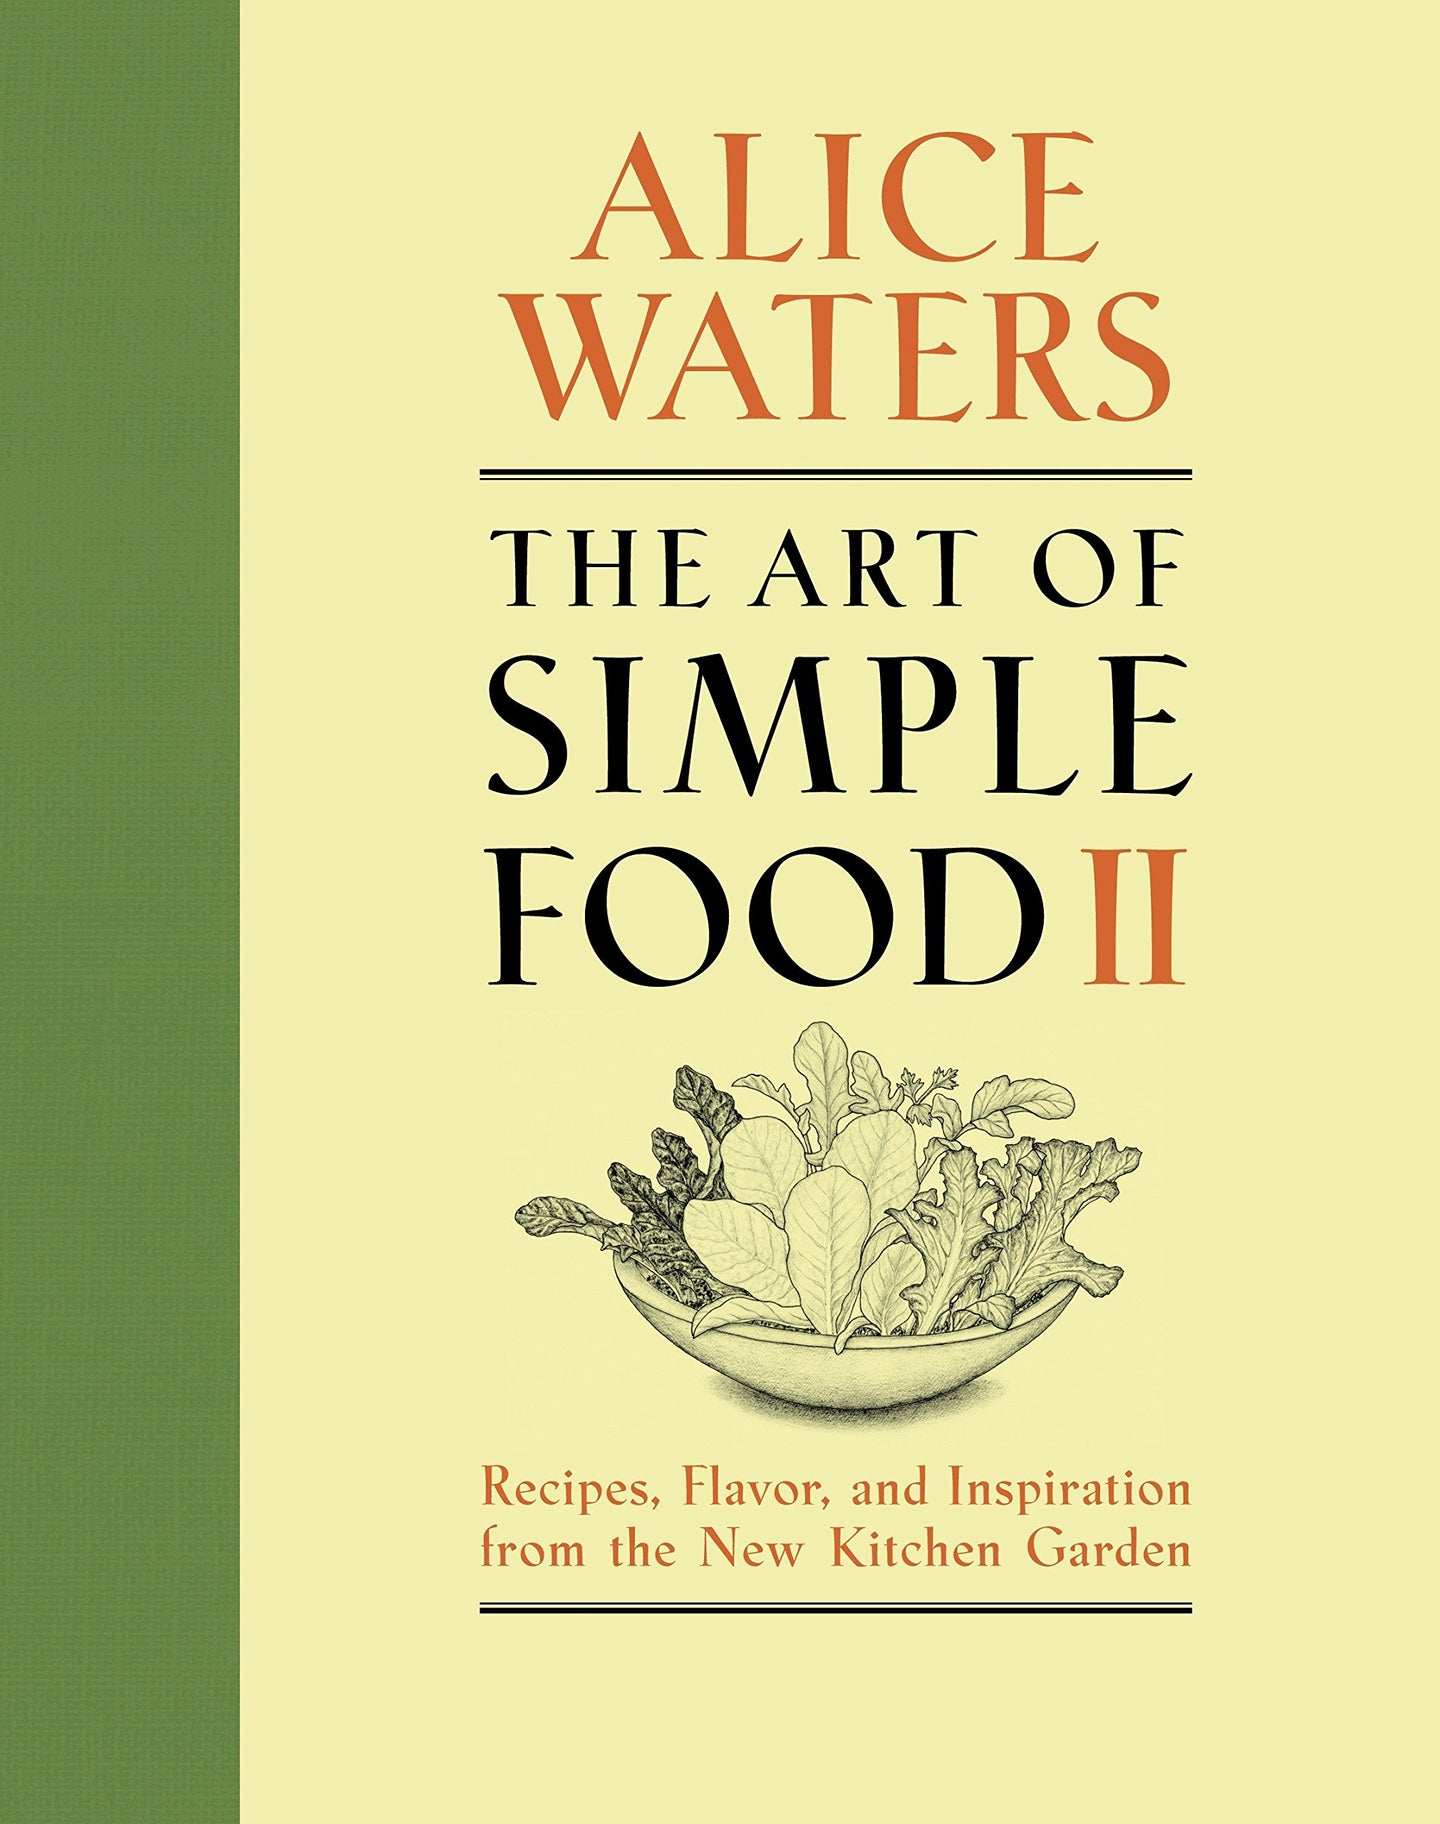 The Art of Simple Food II: Alice Waters